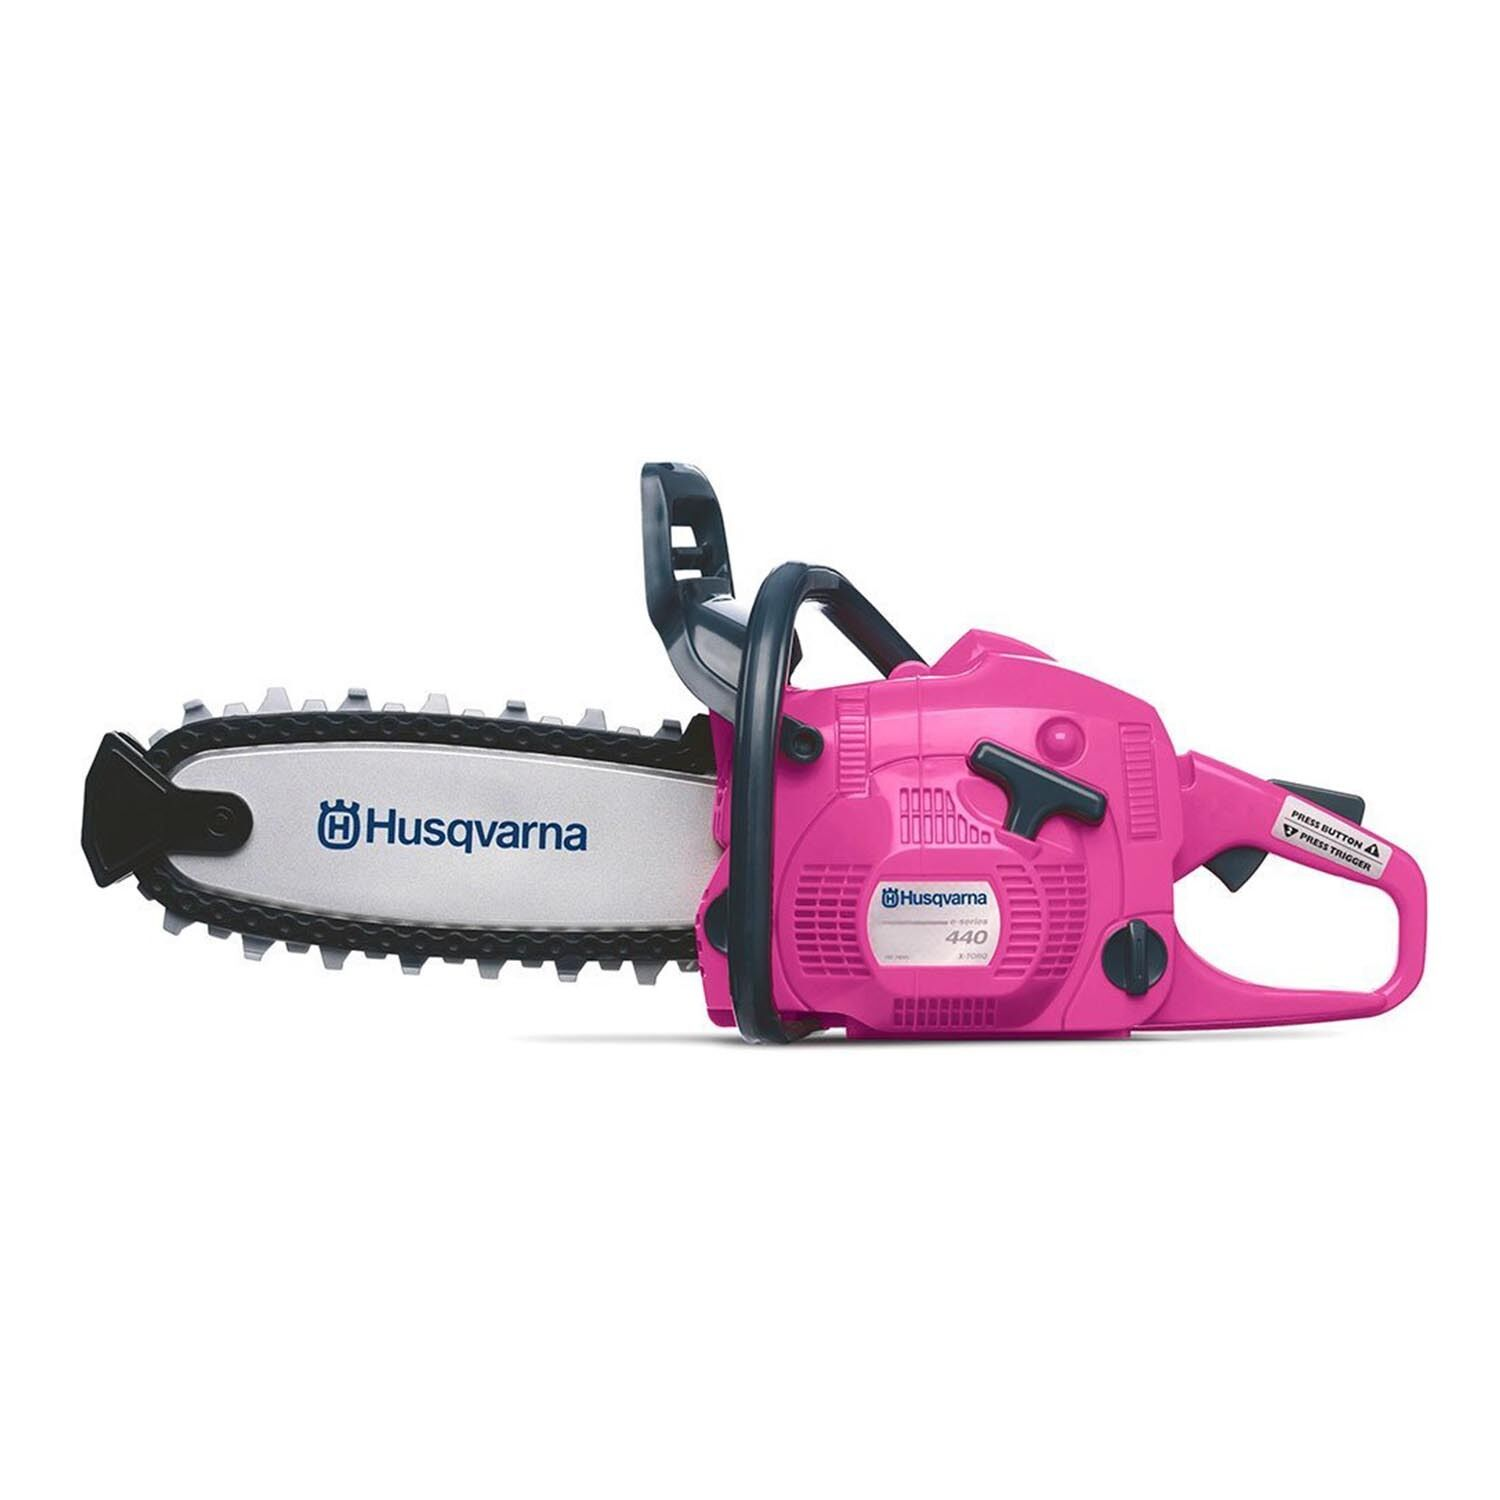 husqvarna construction tools 588883201 limited edition toy pink